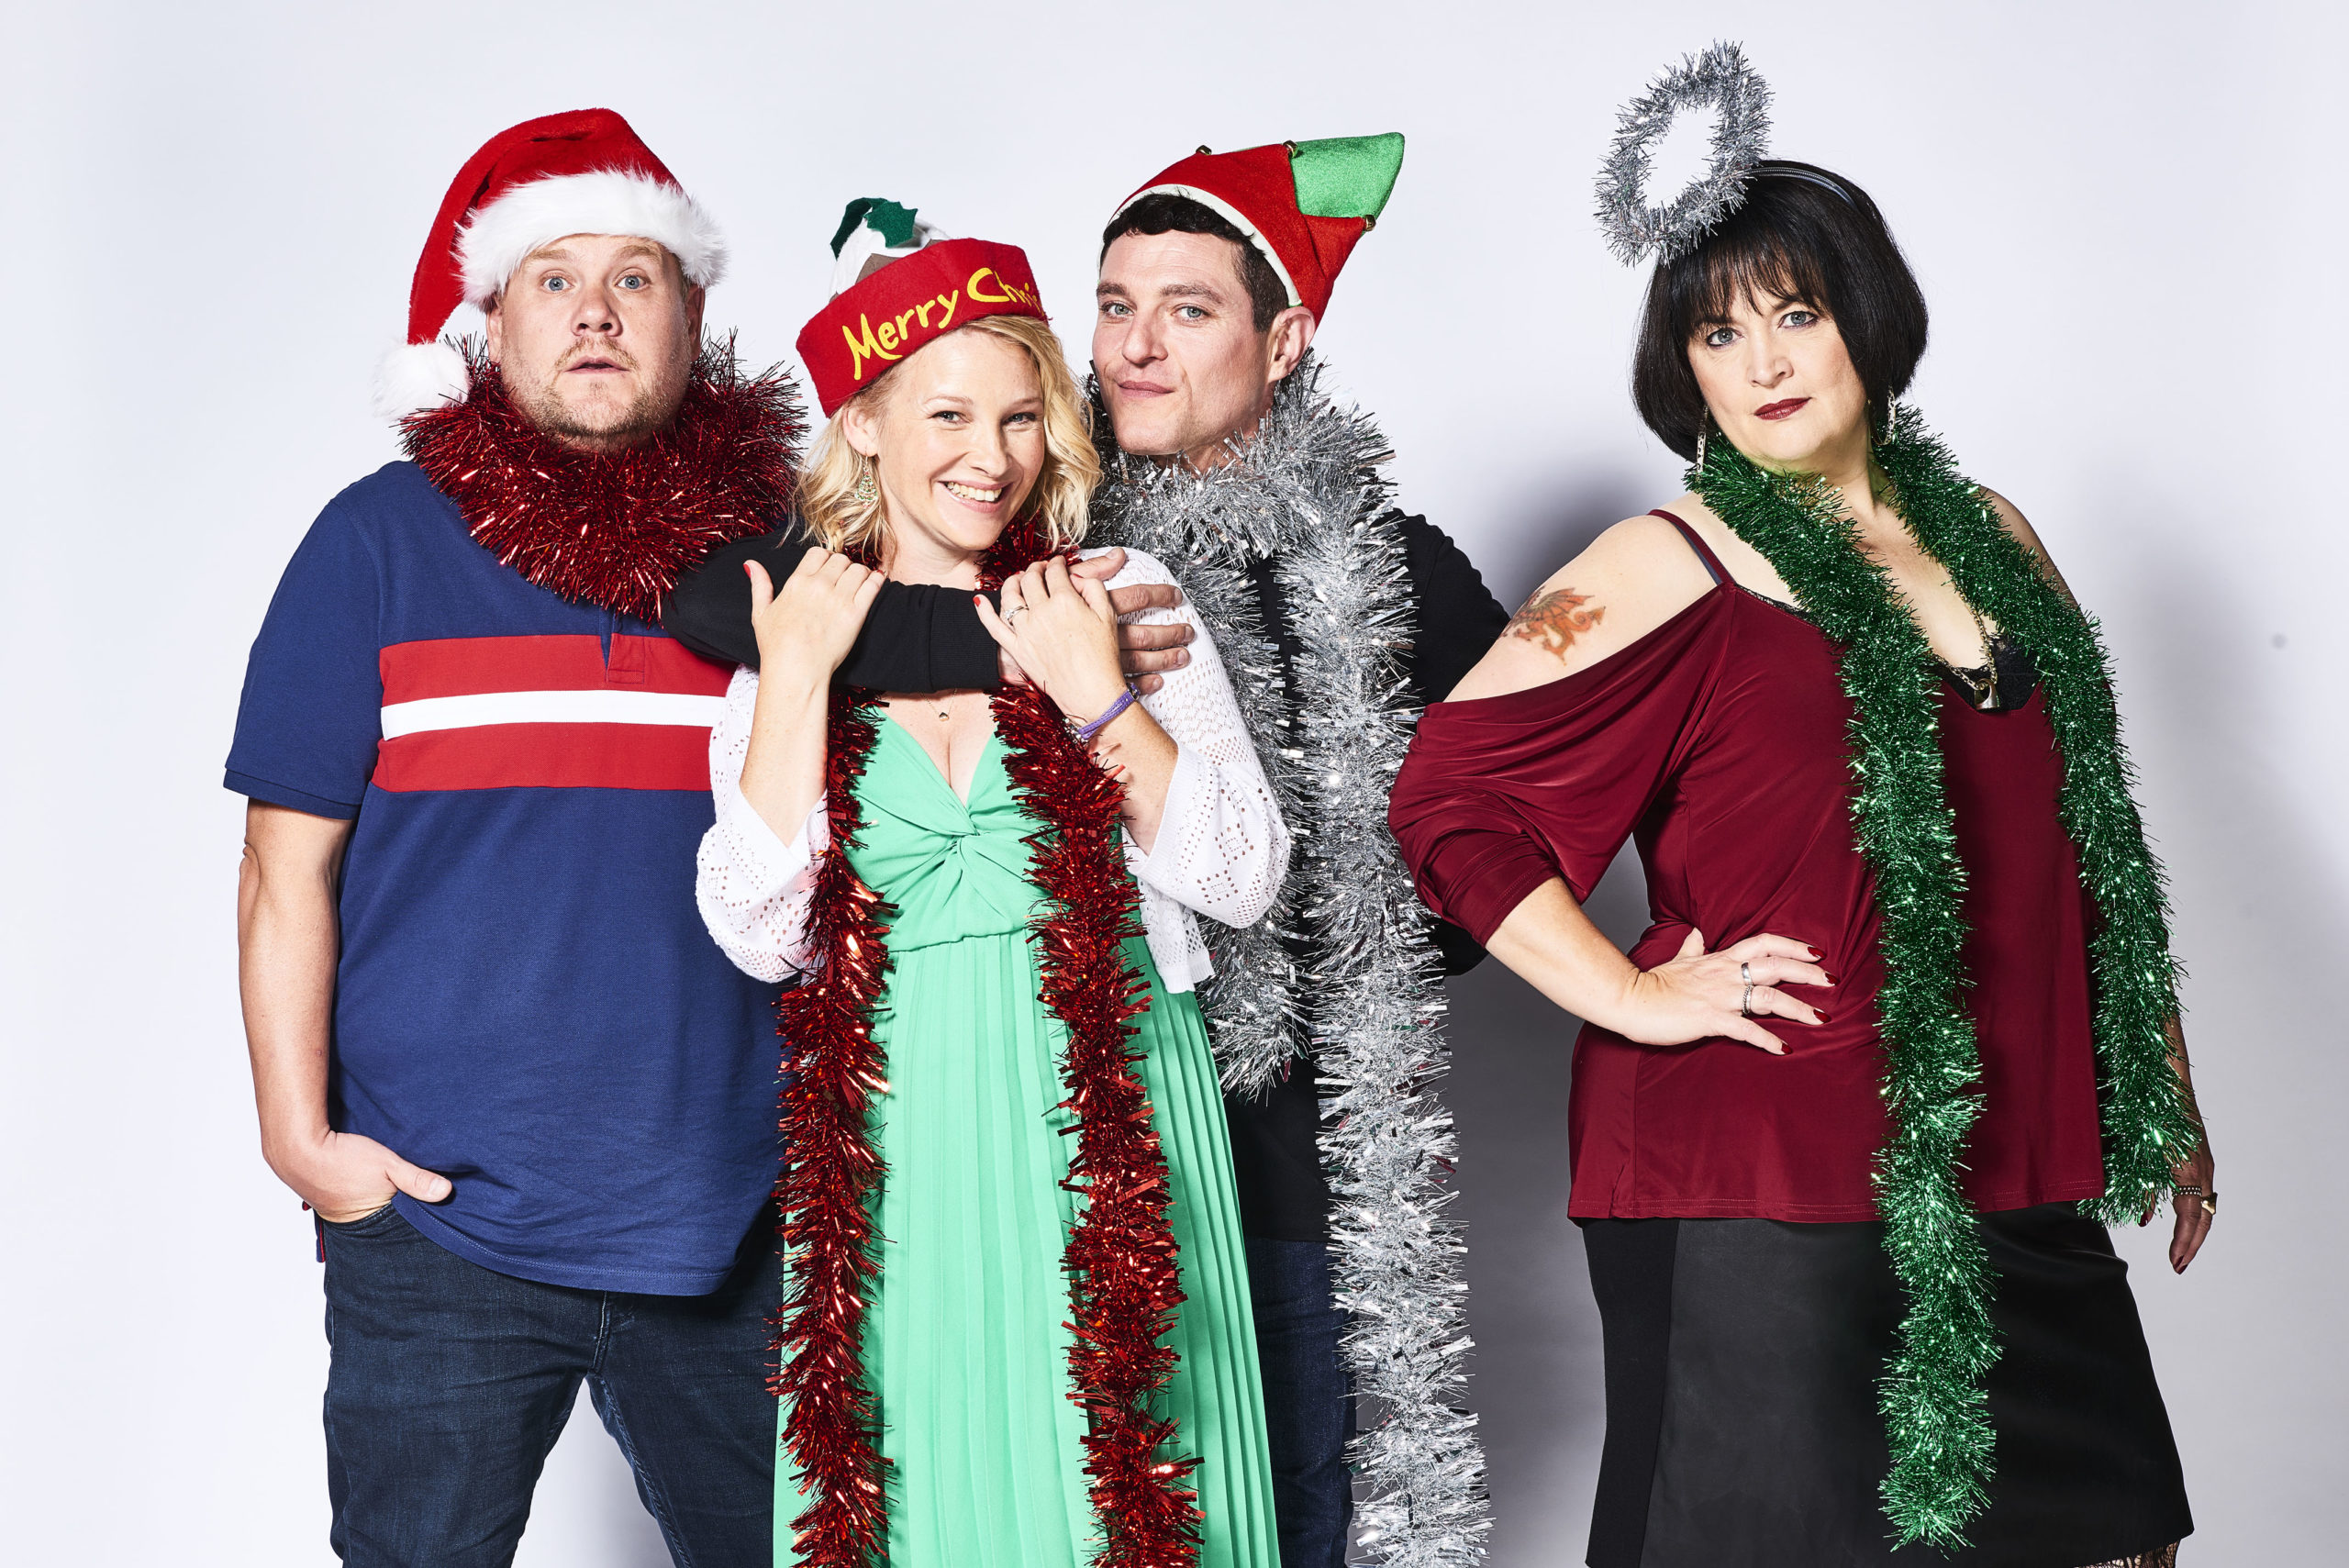 Gavin and Stacey will be reuniting for Christmas 2020